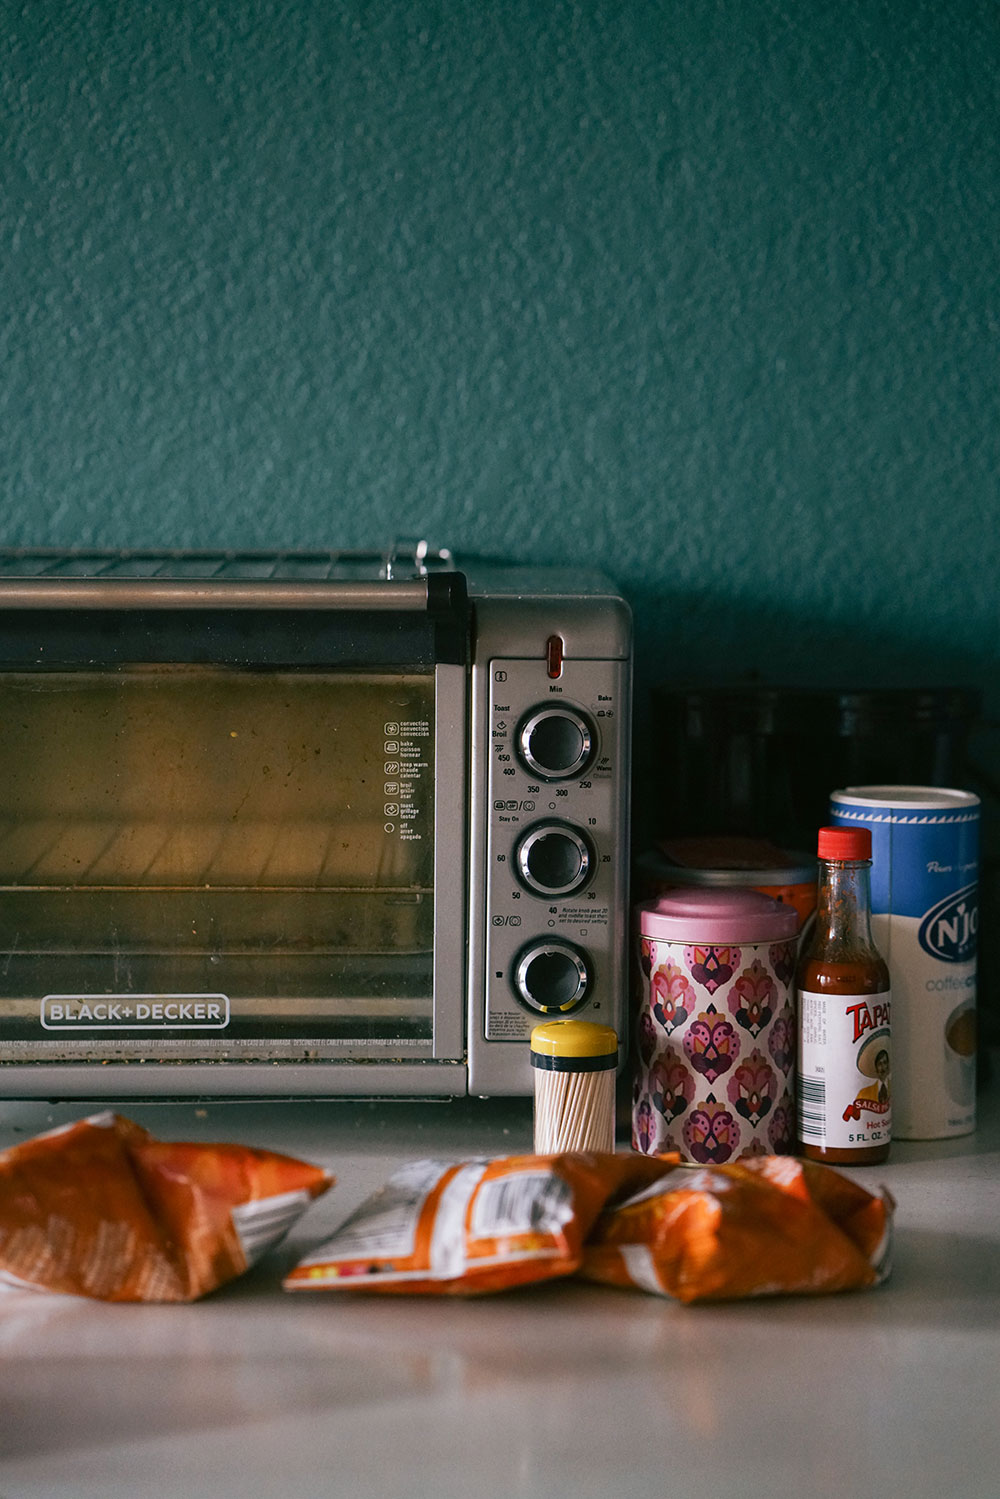 Malcolm likes to cook, and this toaster oven was one of the first things he bought for his new apartment.